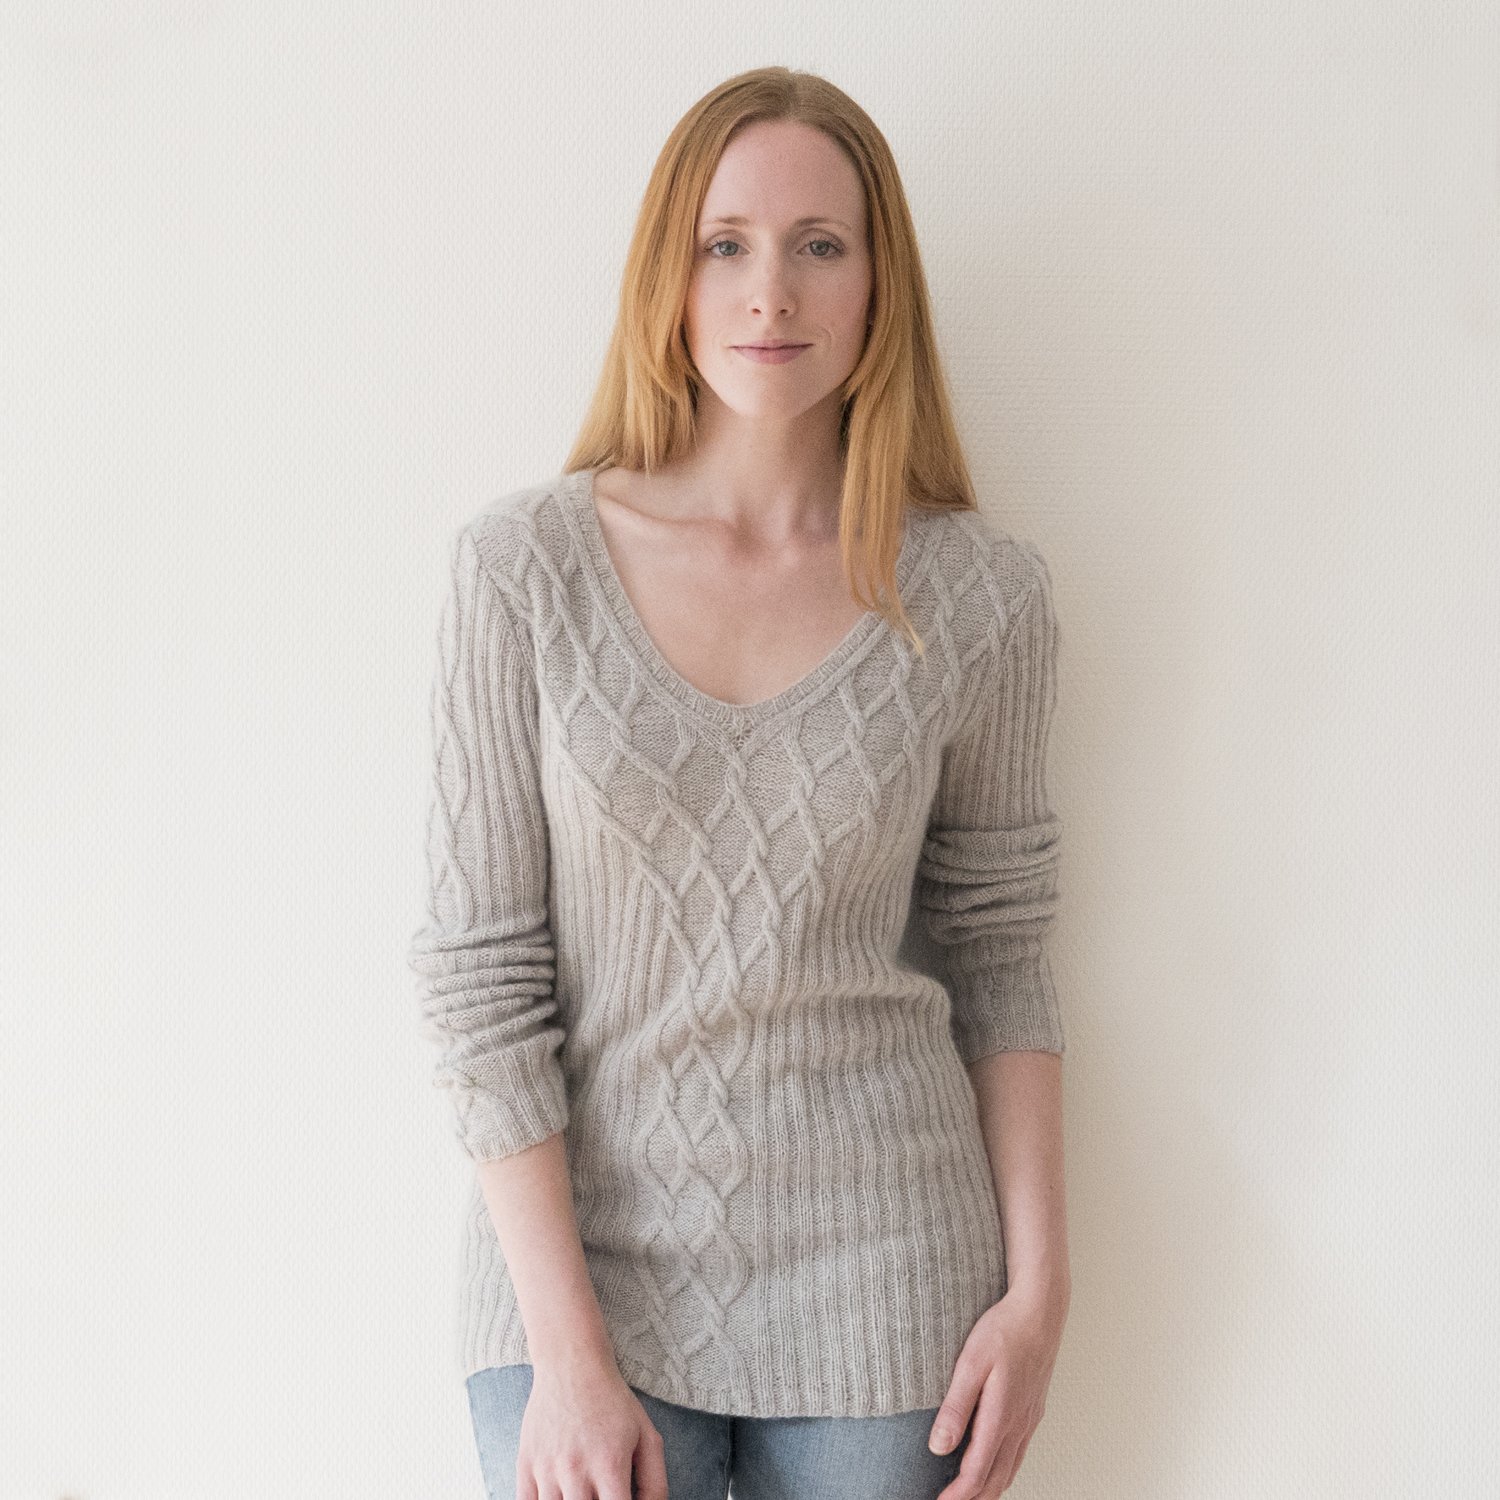 Kit Sweater Rapunzel Knitted With Cashmere Lace Pascuali Yarn